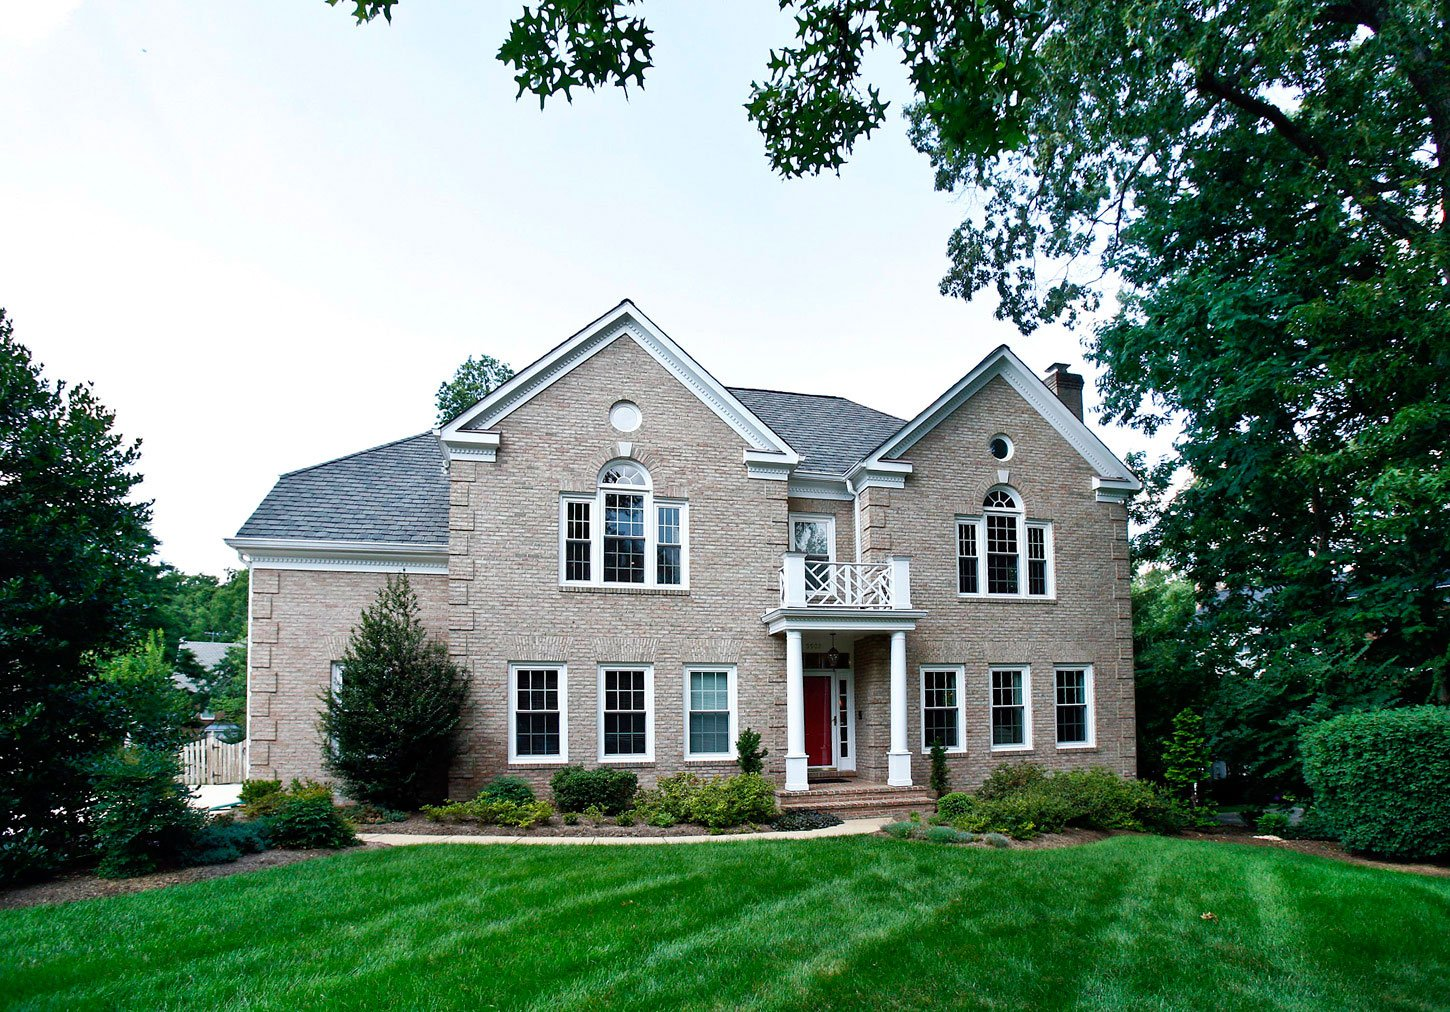 Buy a House with GlassHouse Real Estate